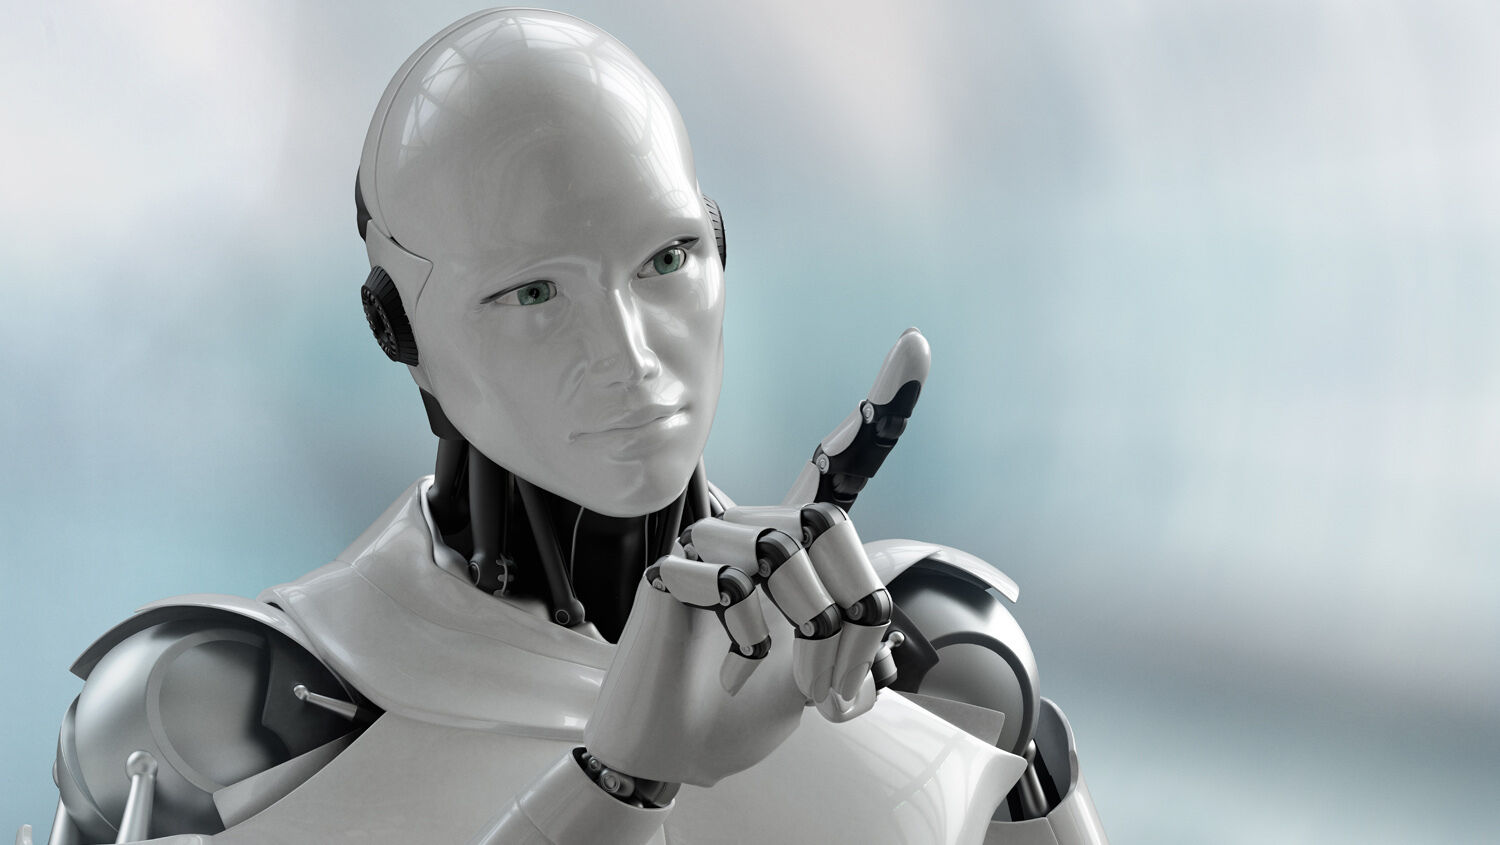 Immortality Robots – The Future of Humanity